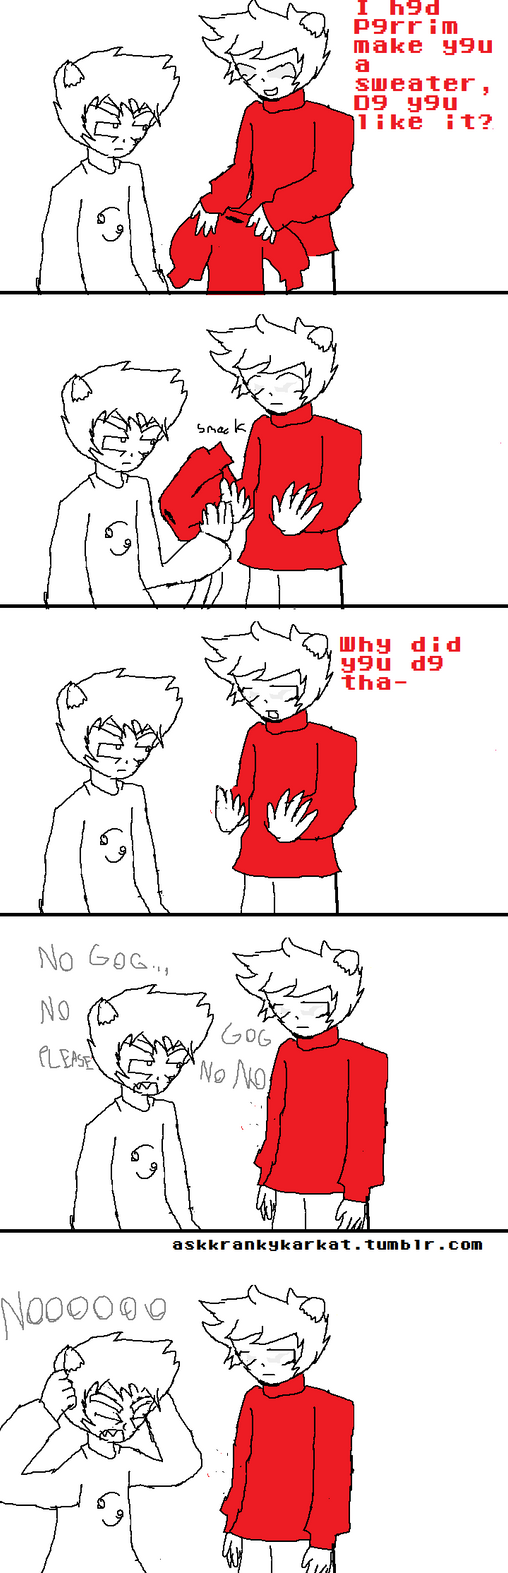 Karkat kankri and the sweater of doom by theclosetstalker on